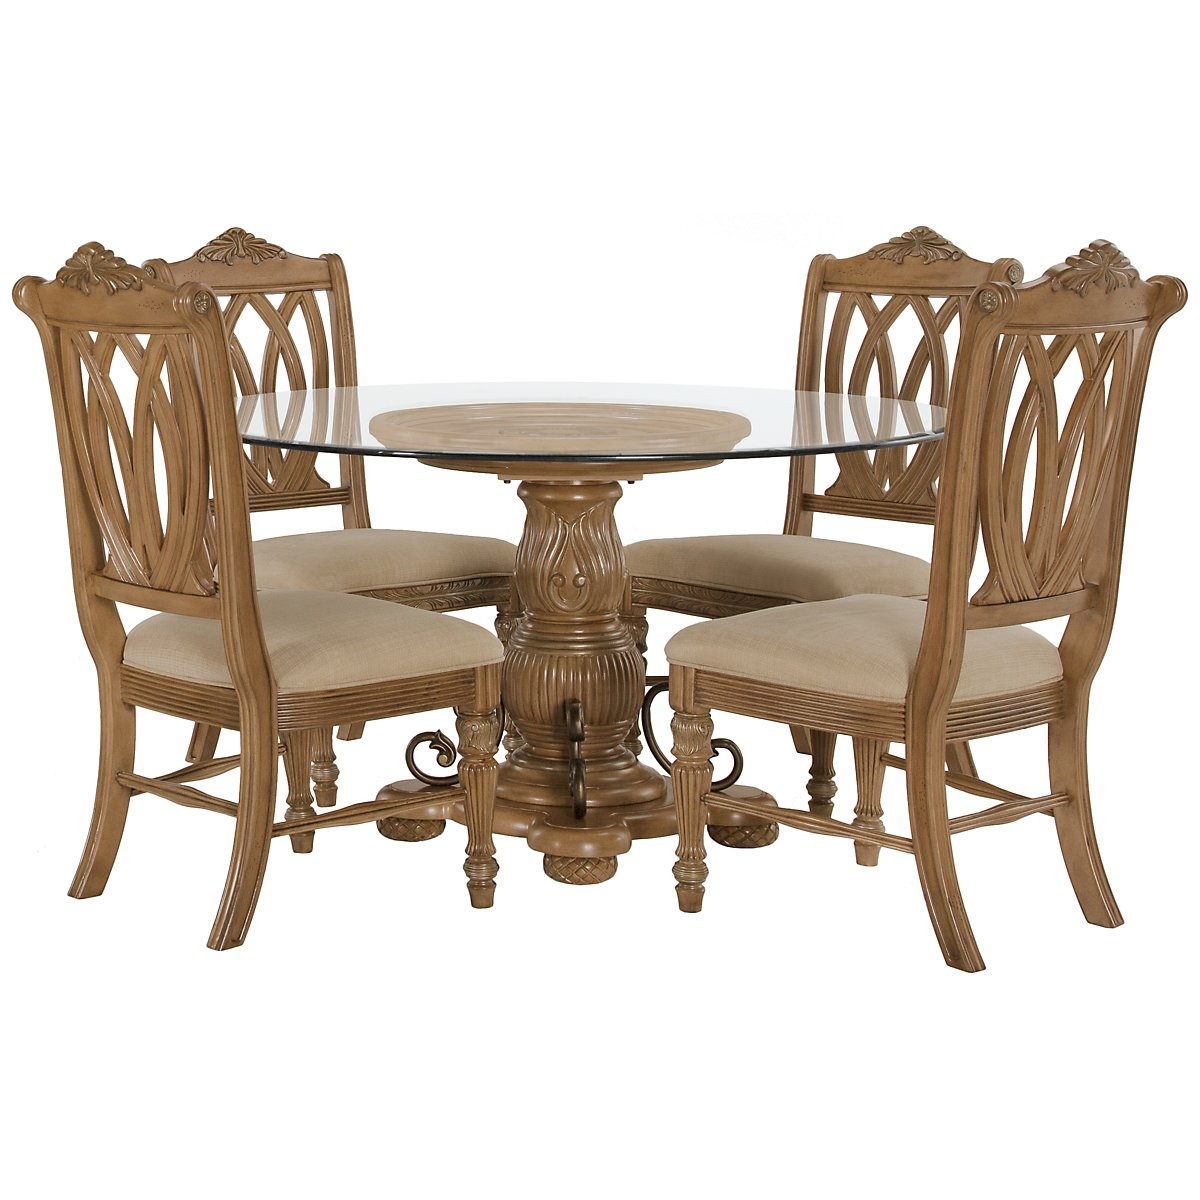 Tradewinds Light Tone Glass Table & 4 Wood Chairs